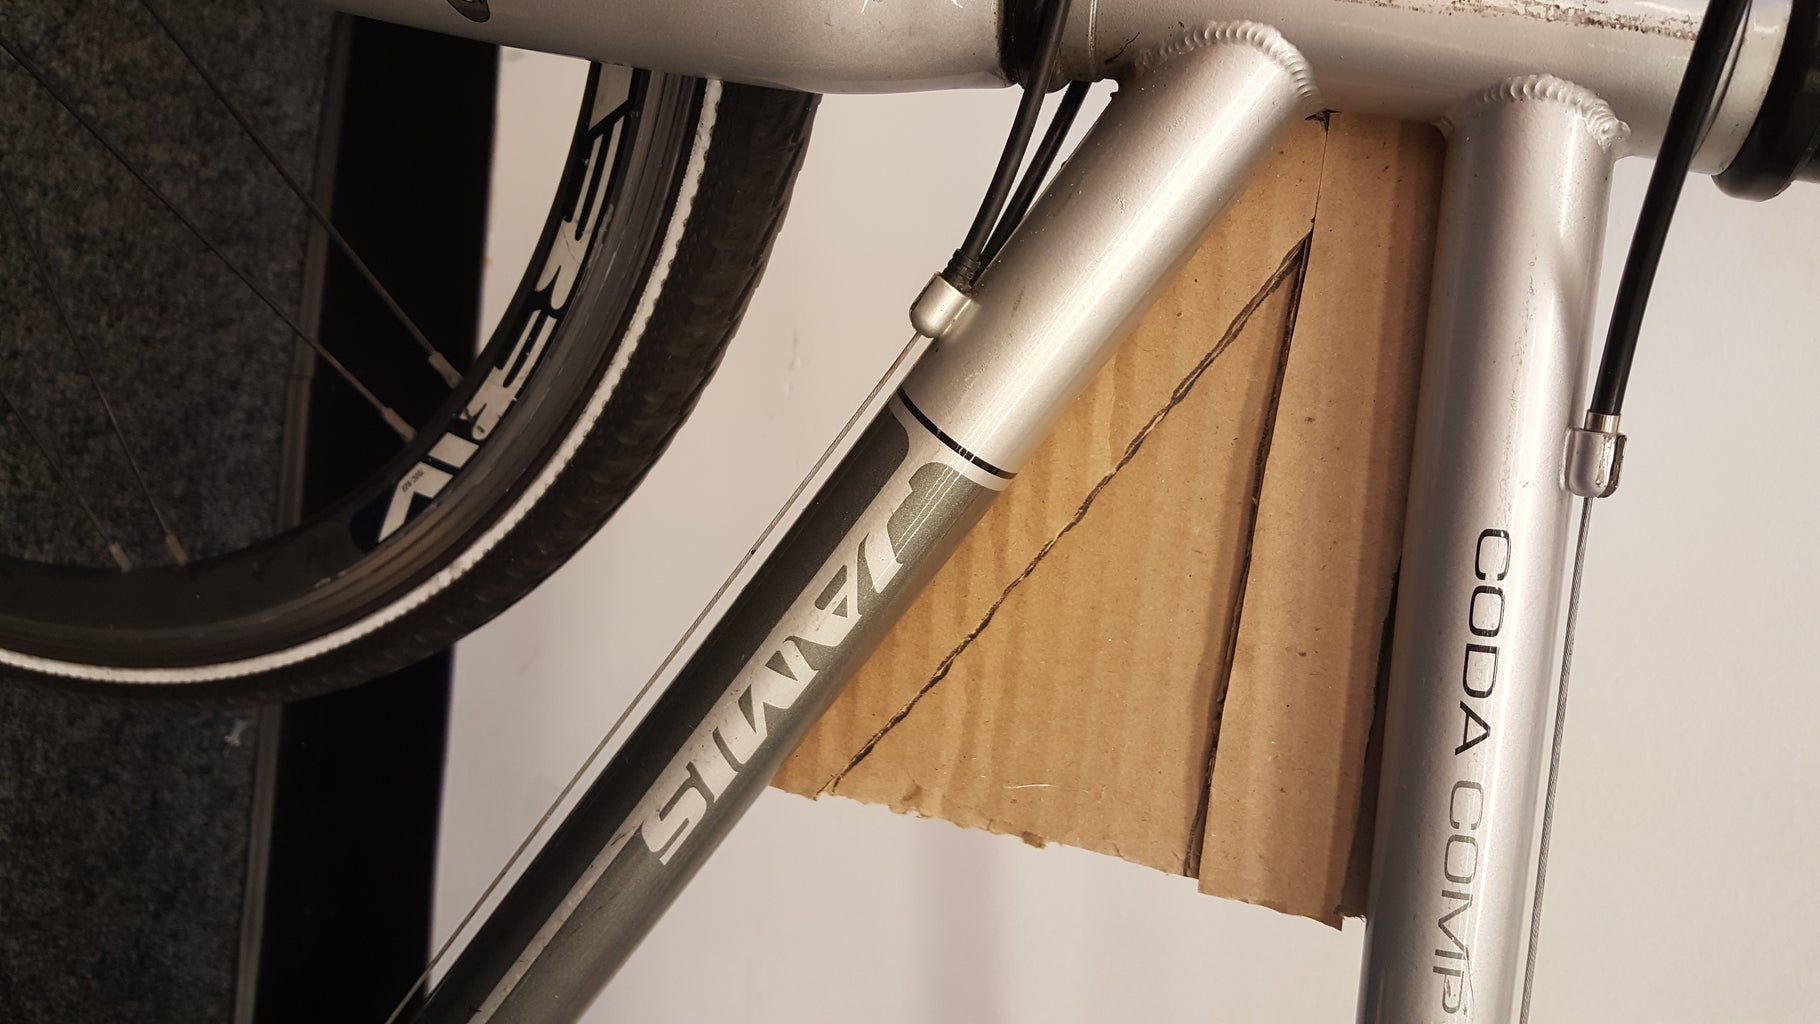 Bicycle Attachment Plate: Cardboard Mock-up